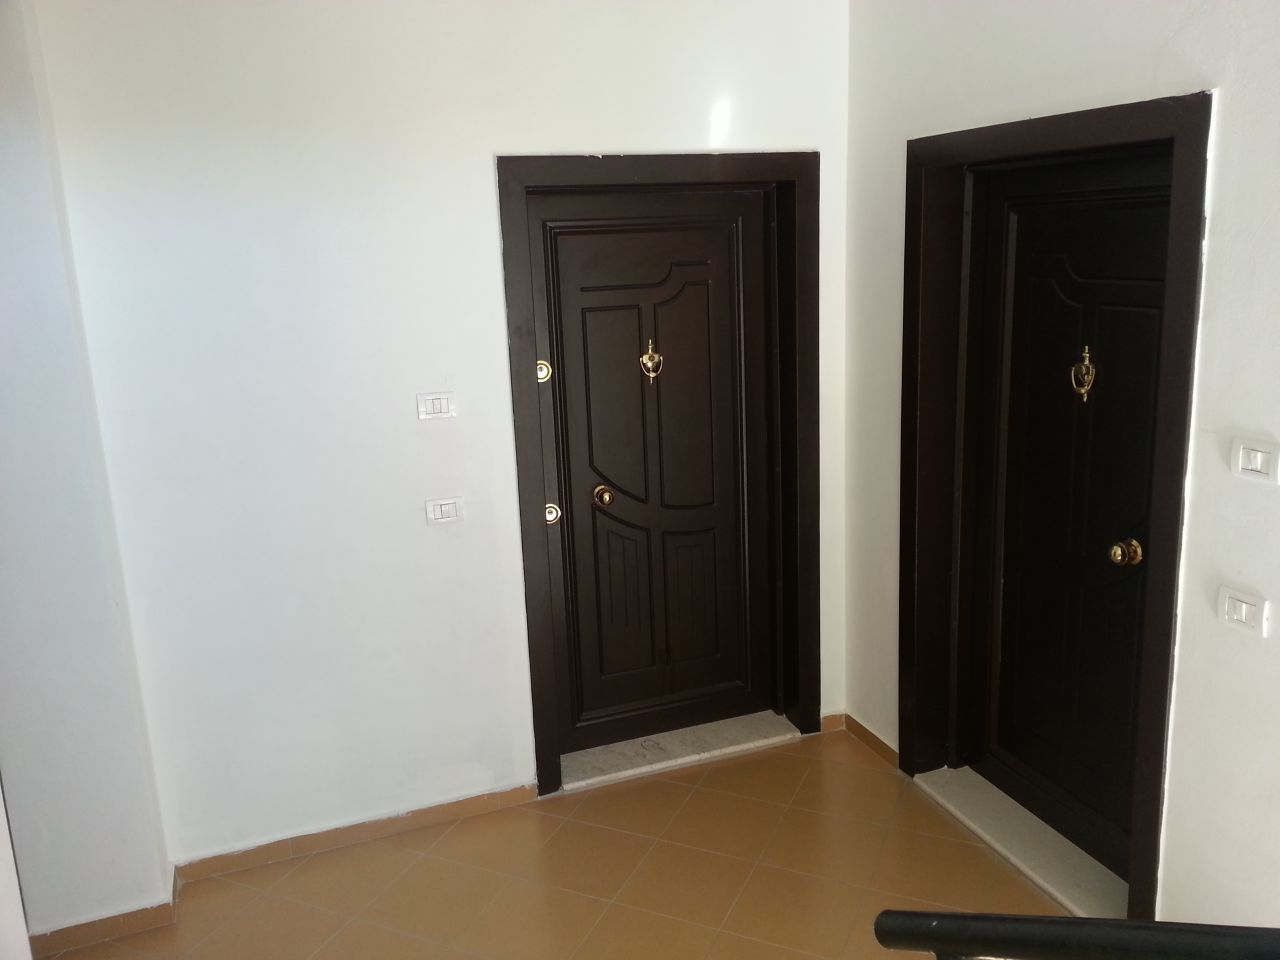 Albania Real Estate in Vlore. Apartments in Vlore with Albania Property Group